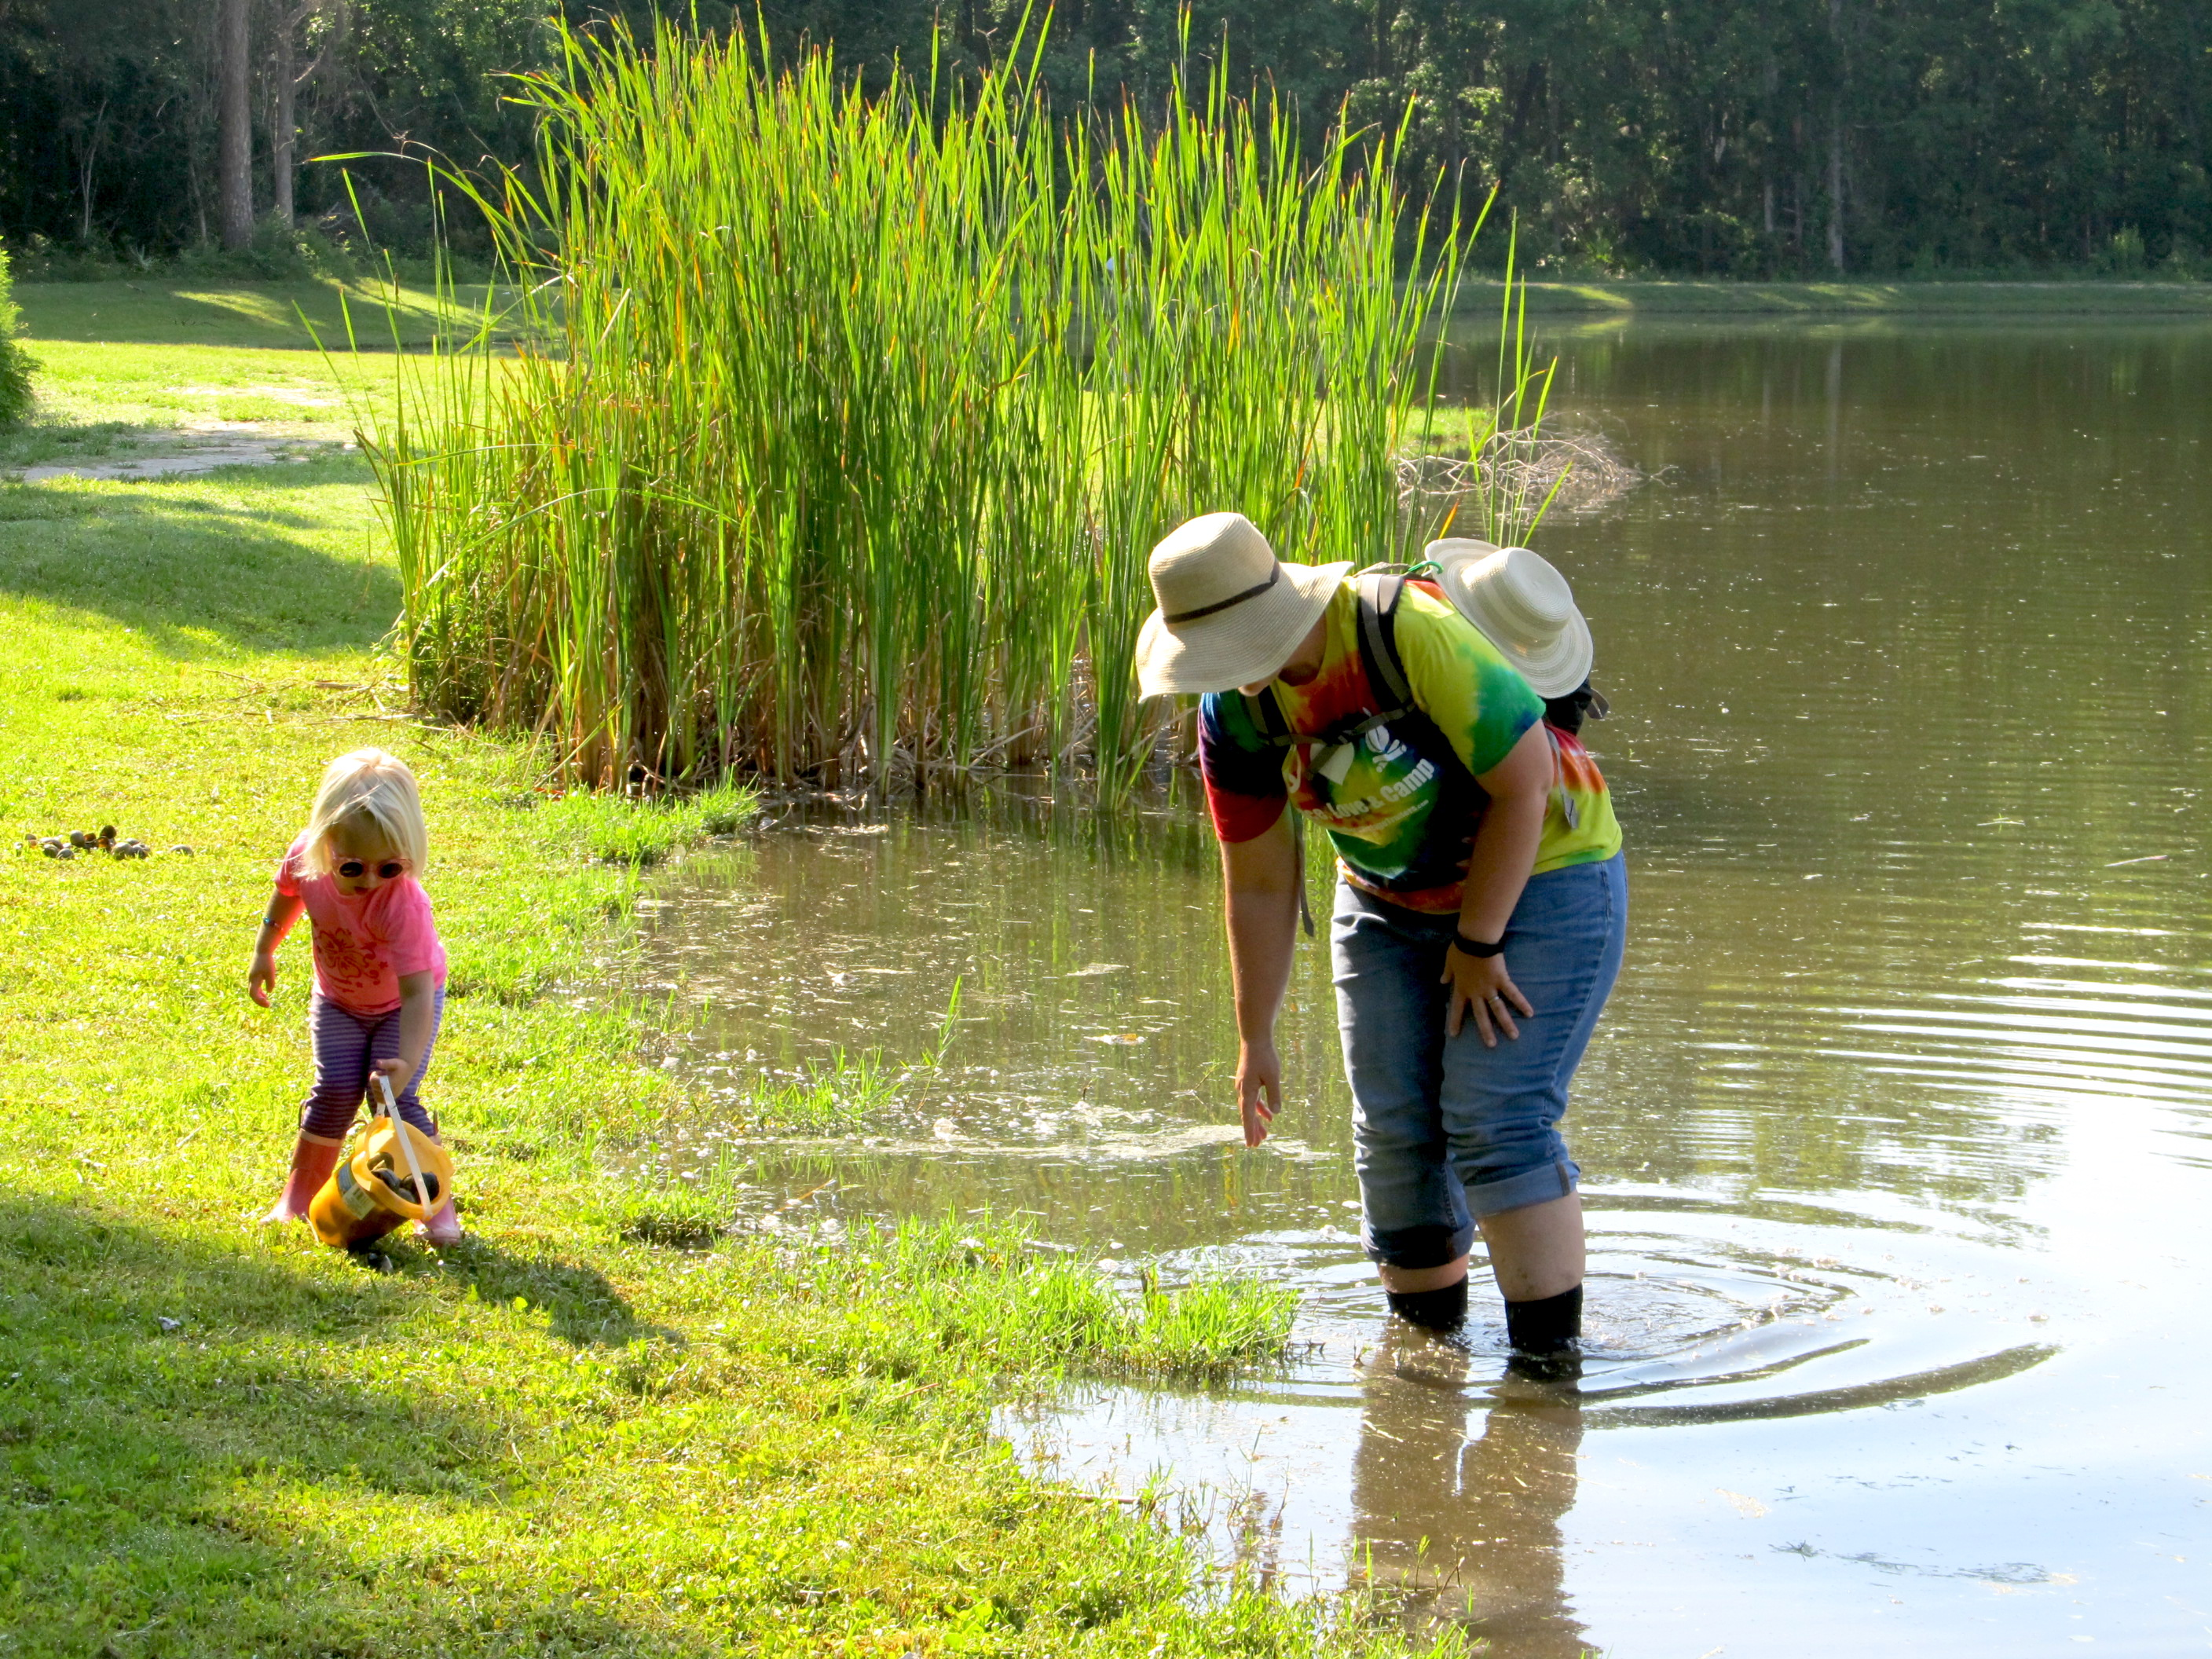 For the past four years, Camden County Extension has hosted island apple snail removal days in partnership with the Georgia Department of Natural Resources. To date, volunteers like Beth Walker and her daughter Lucy have removed 228 gallons of island apple snails and innumerable egg masses.